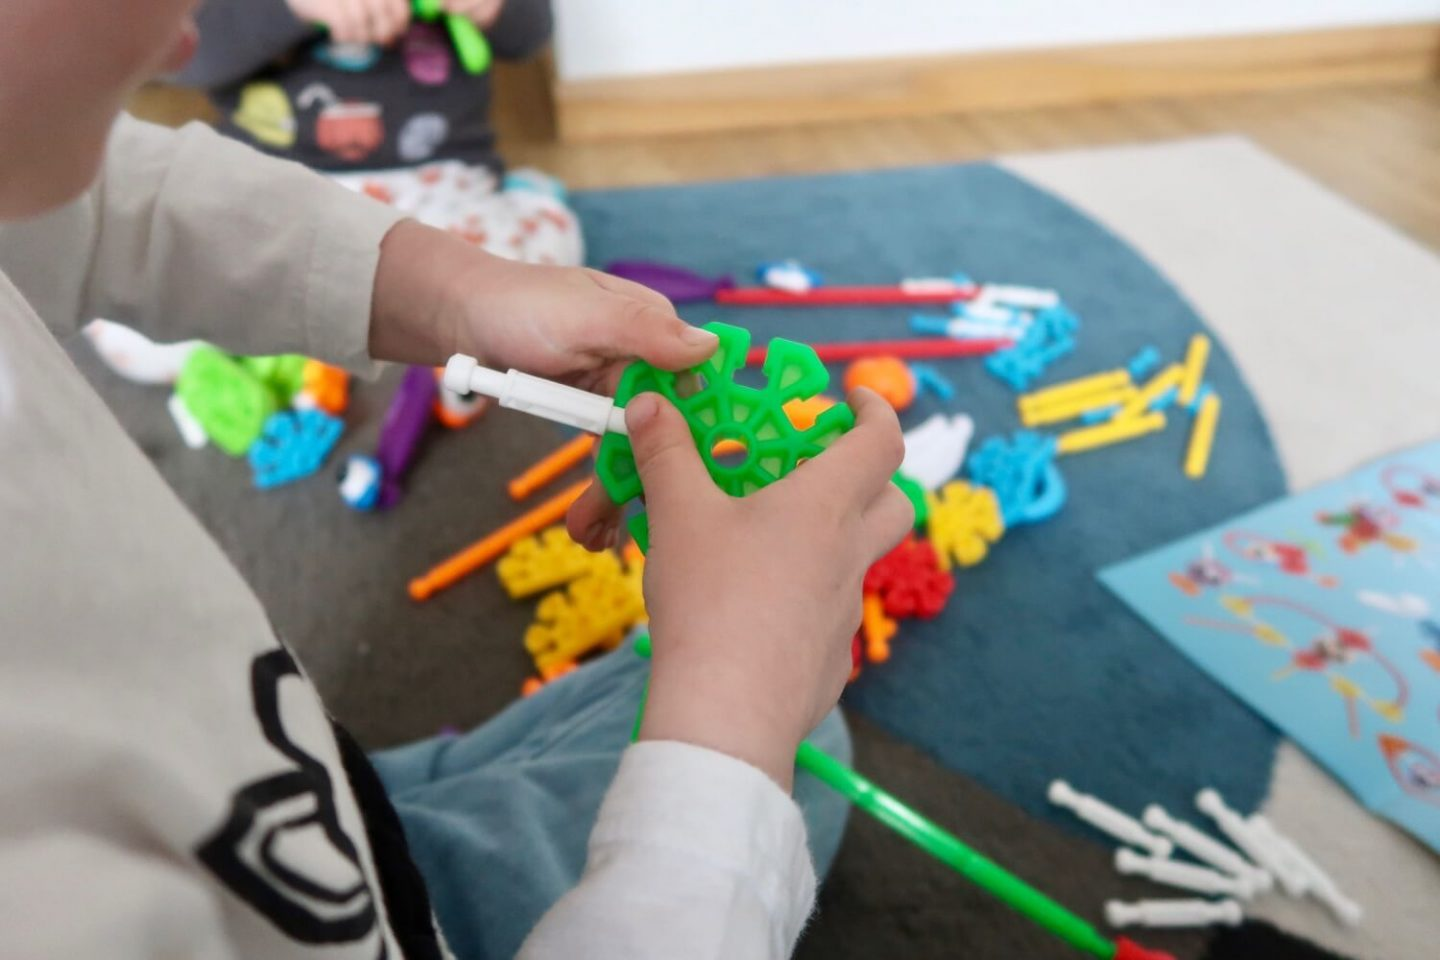 A child's hands holding some green Kid K'Nex connectors